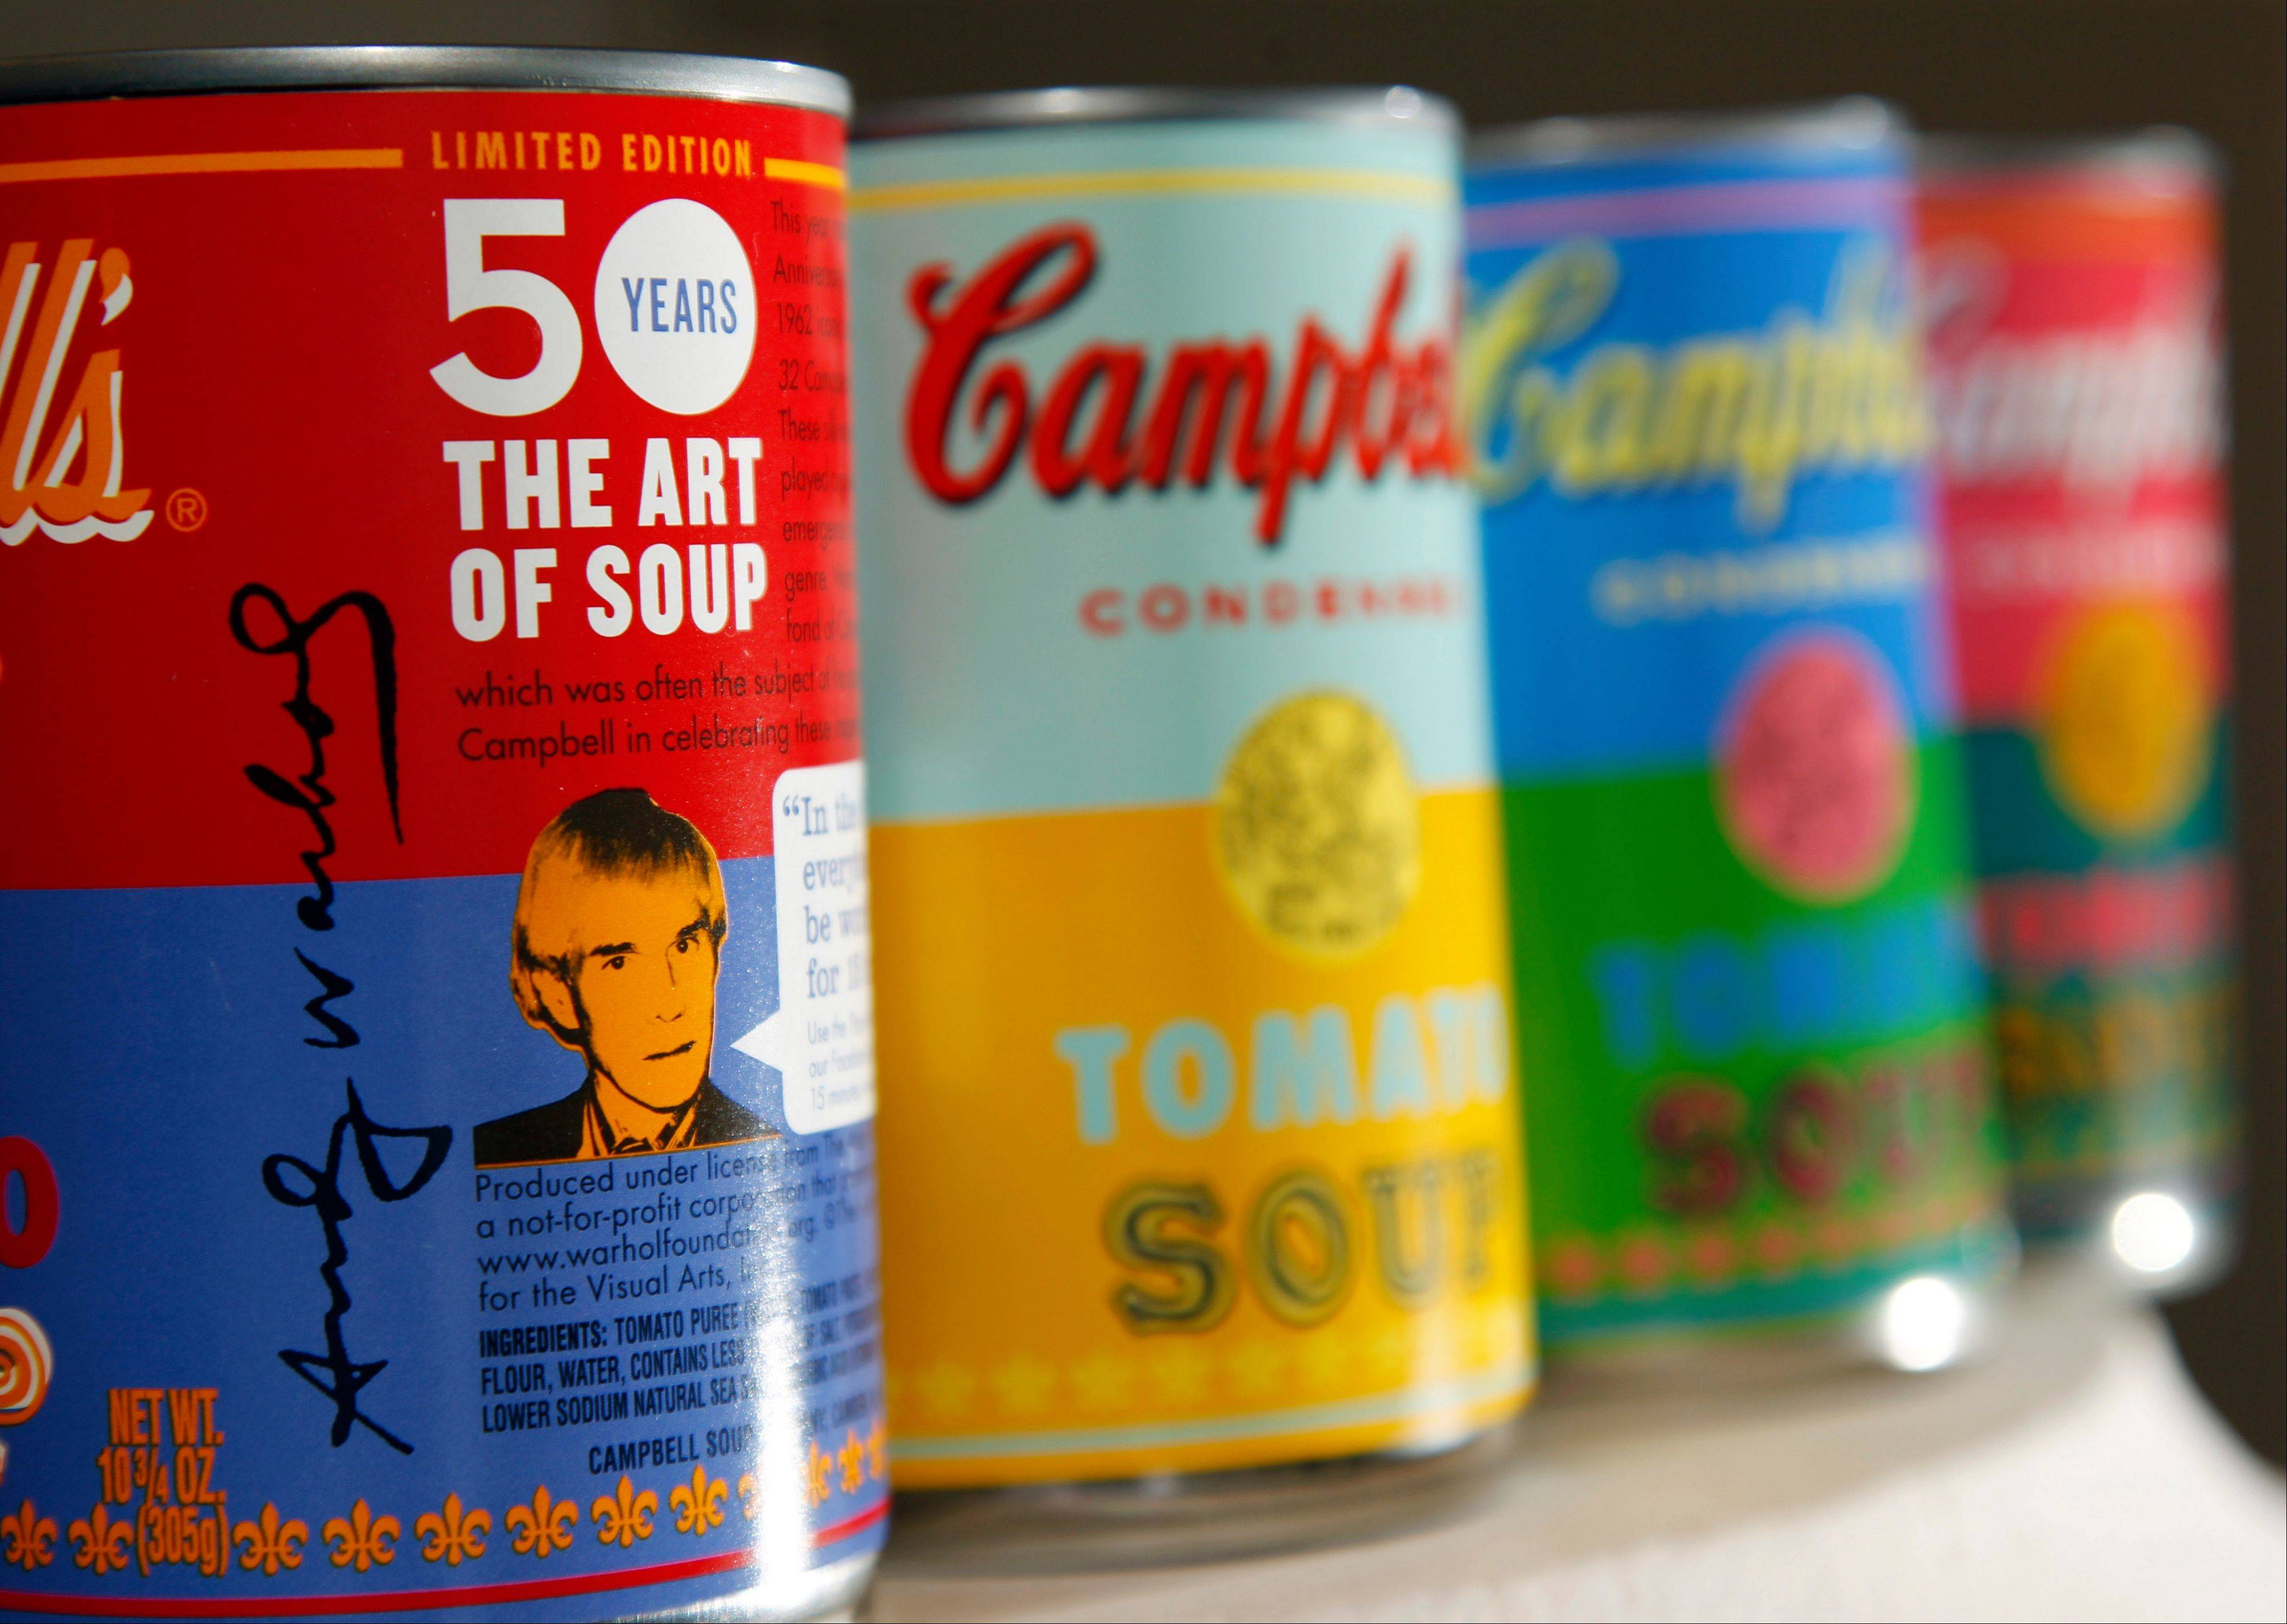 Campbell Soup's net income rose 27 percent in its fiscal fourth quarter on strong sales of soup and other simple meals in the U.S. The results beat analysts' expectations and the food maker gave fiscal 2013 revenue guidance above Wall Street's view.